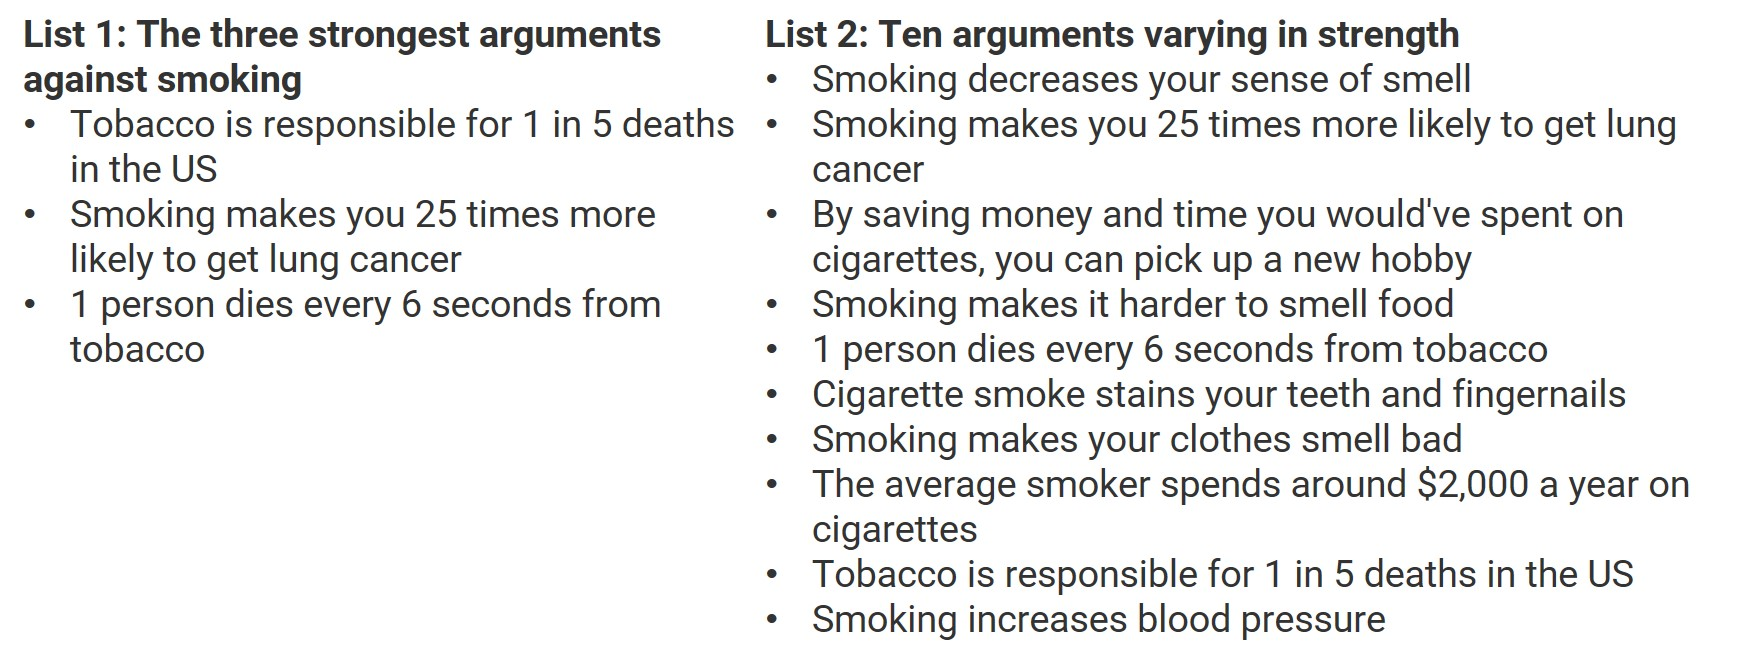 Two lists of smoking arguments used in study